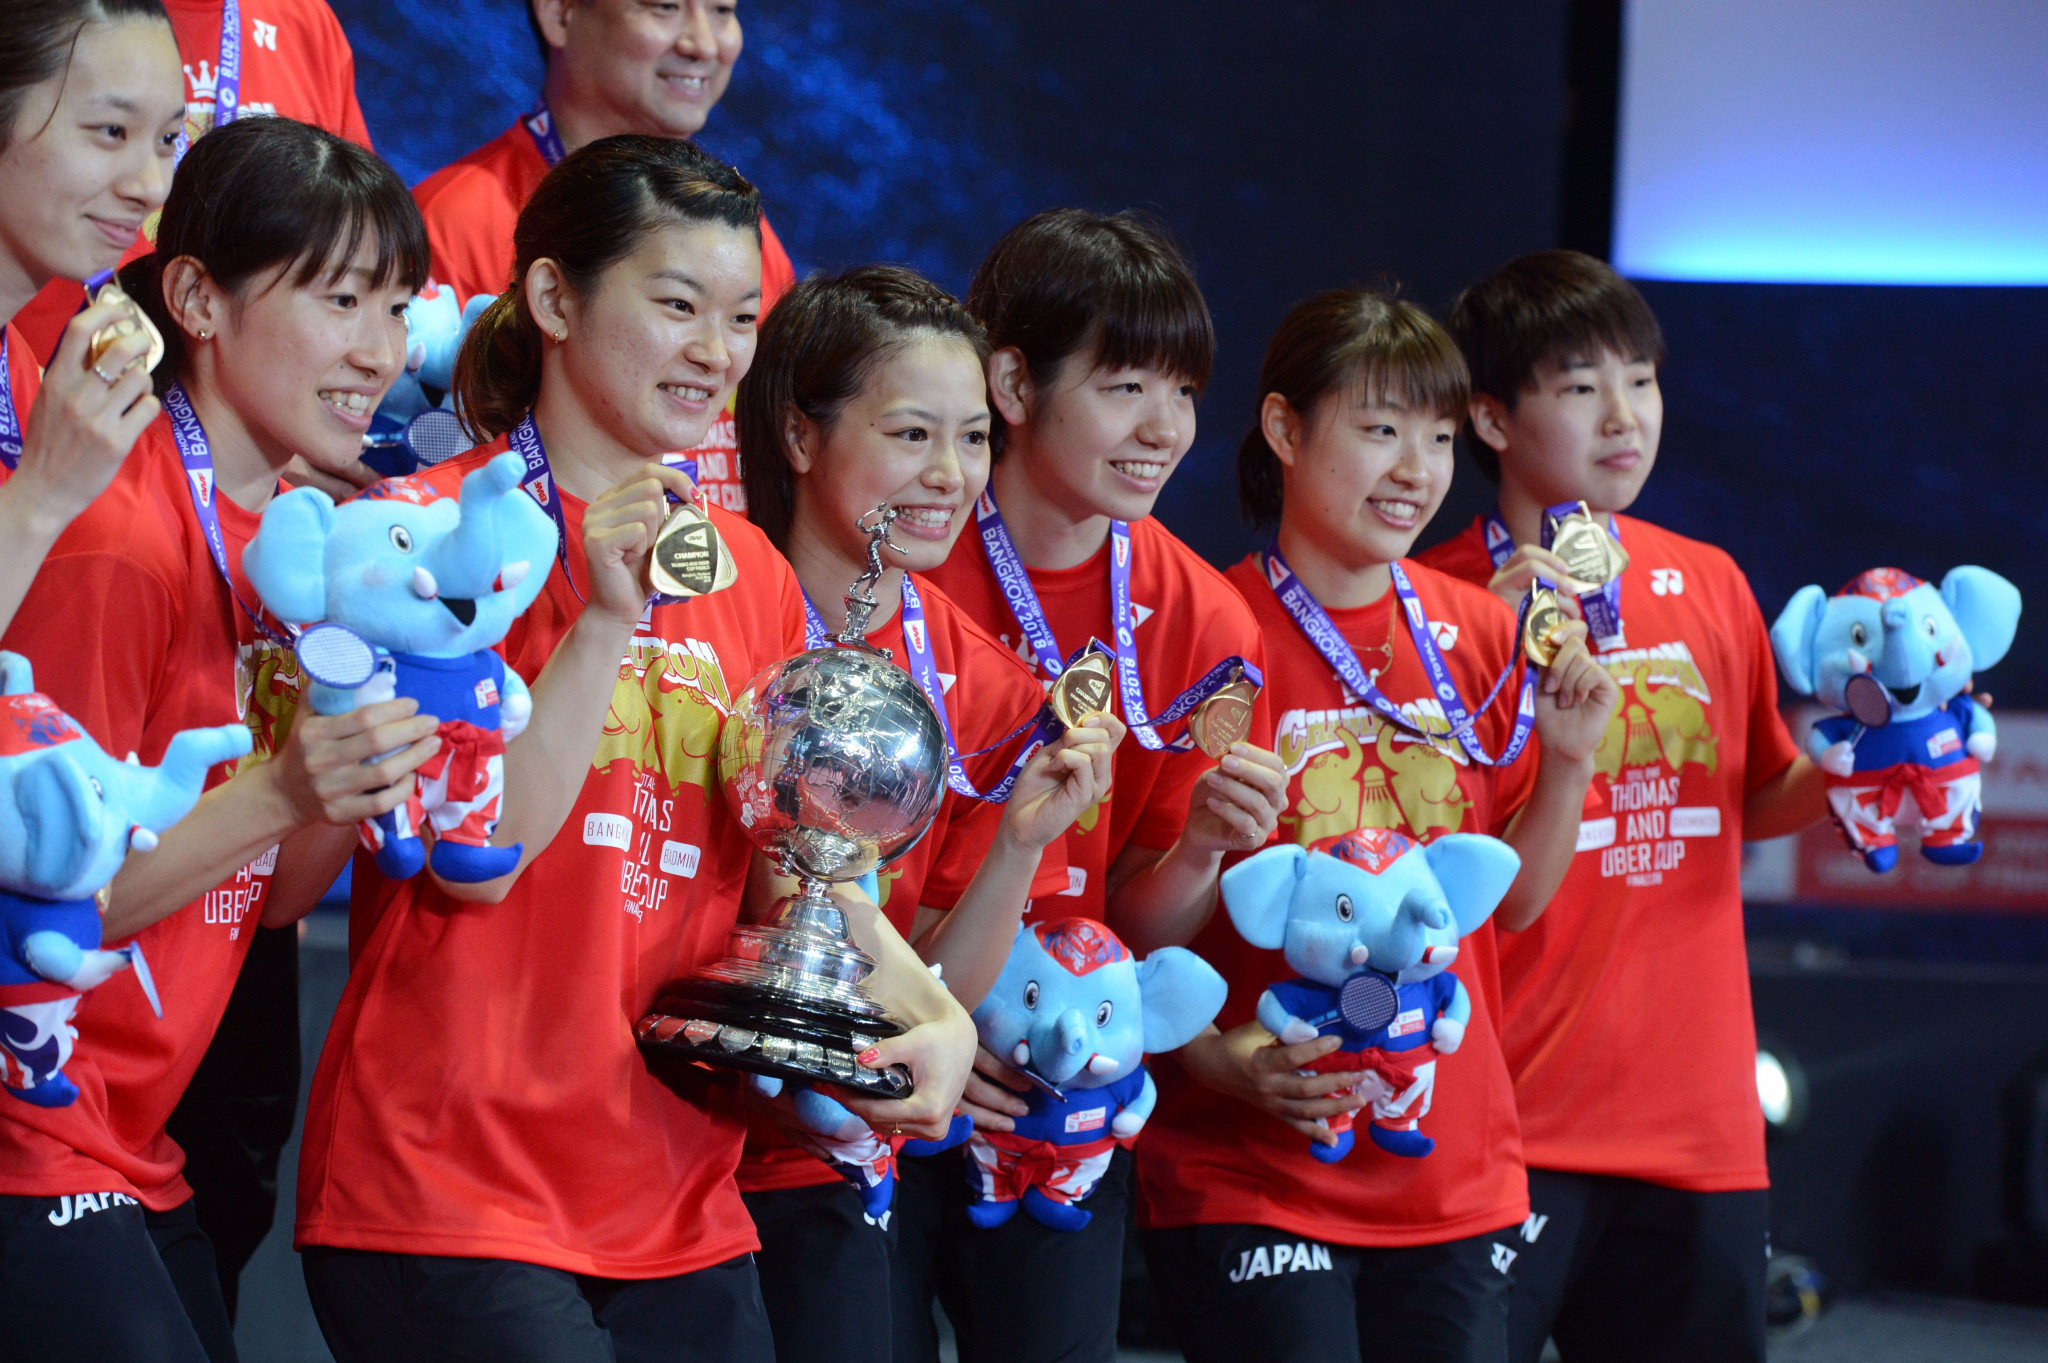 Japan will compete in this year's Uber Cup as defending champions and top seeds ©Getty Images